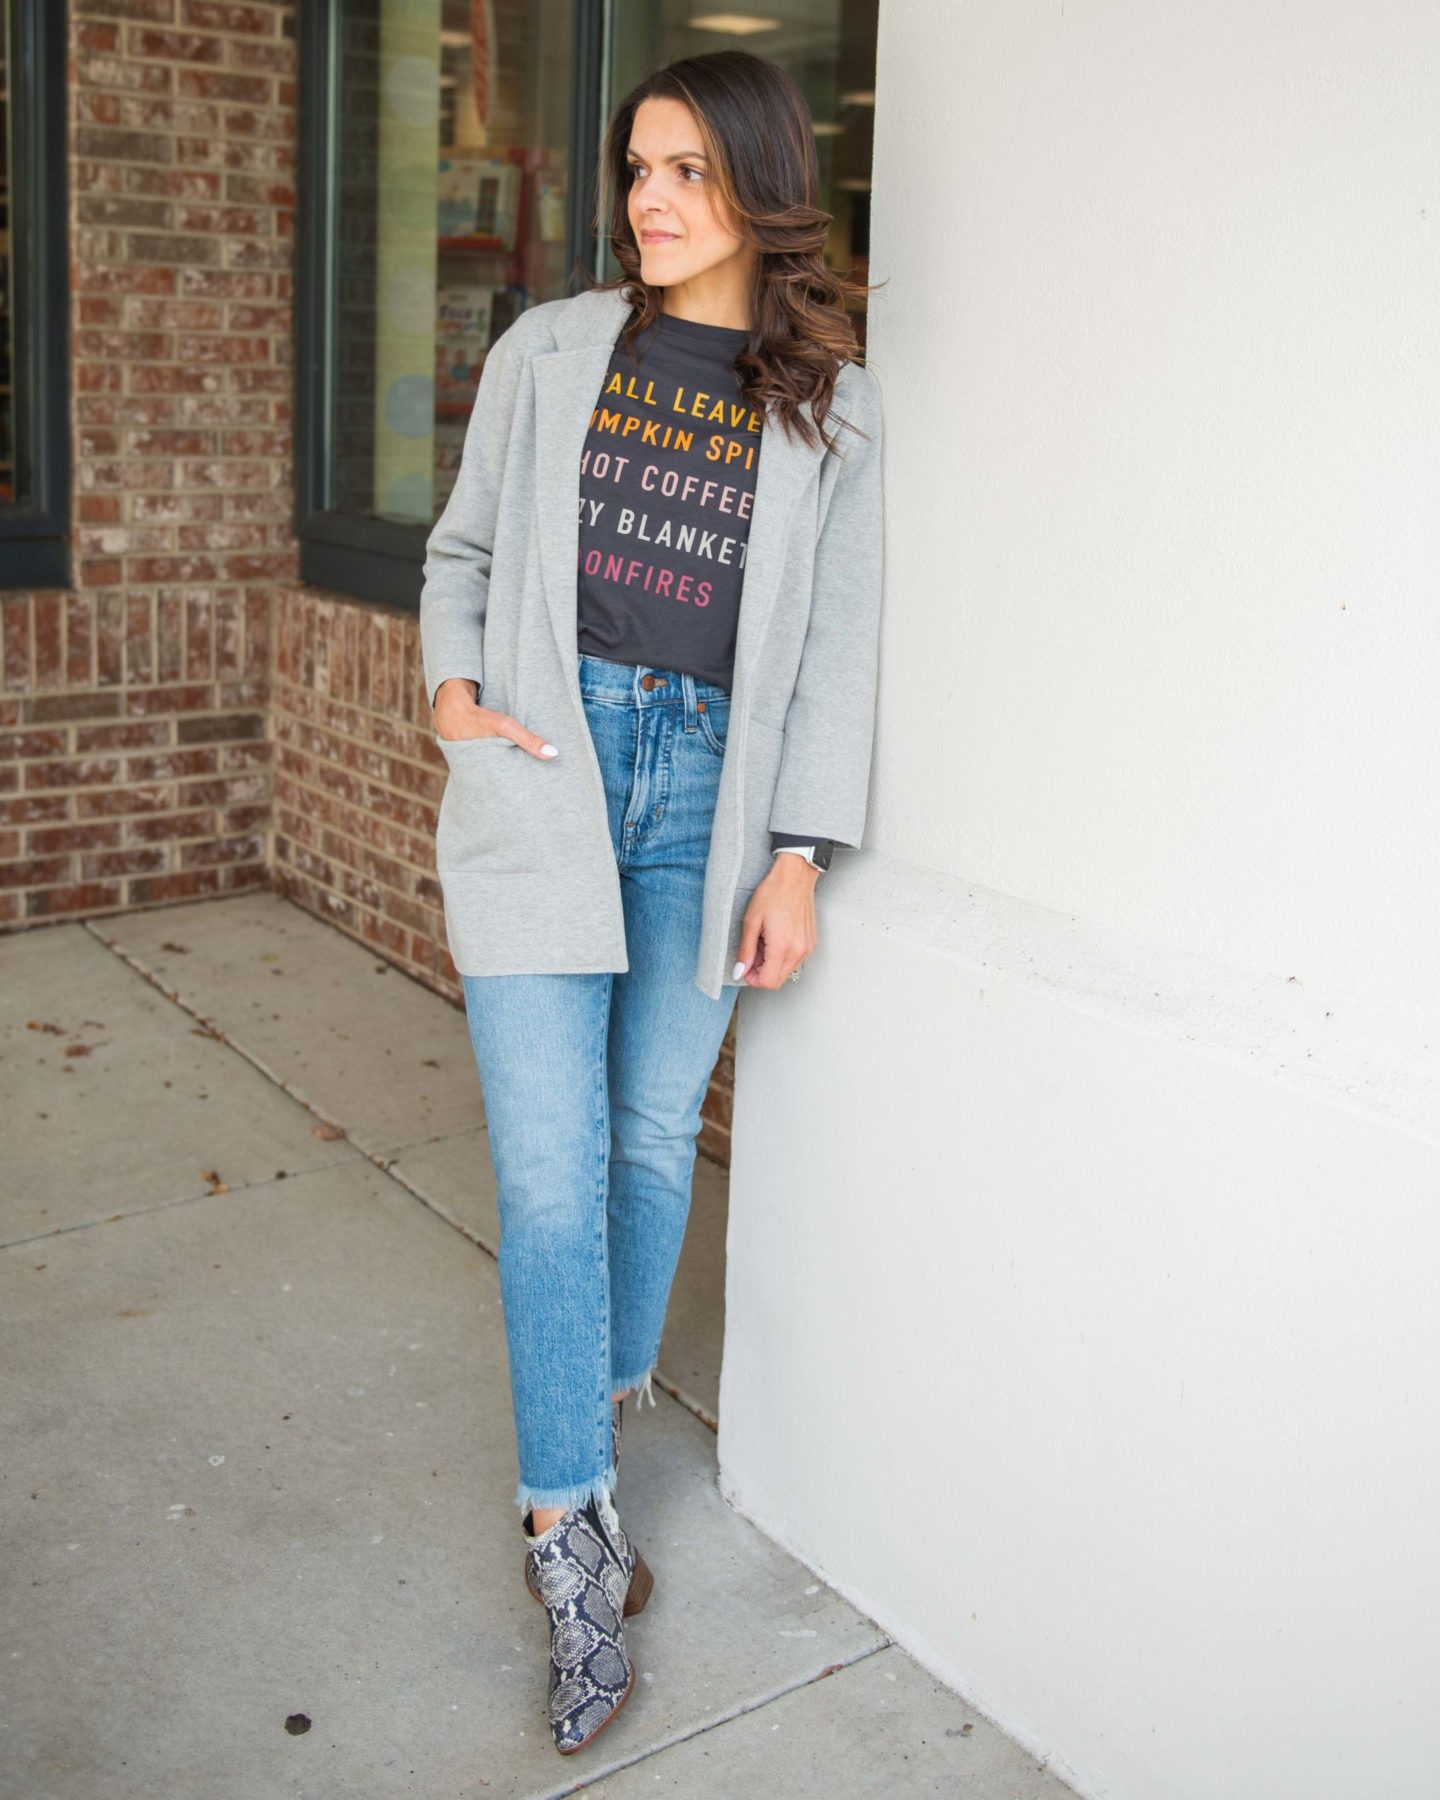 Four ways to style a graphic tee